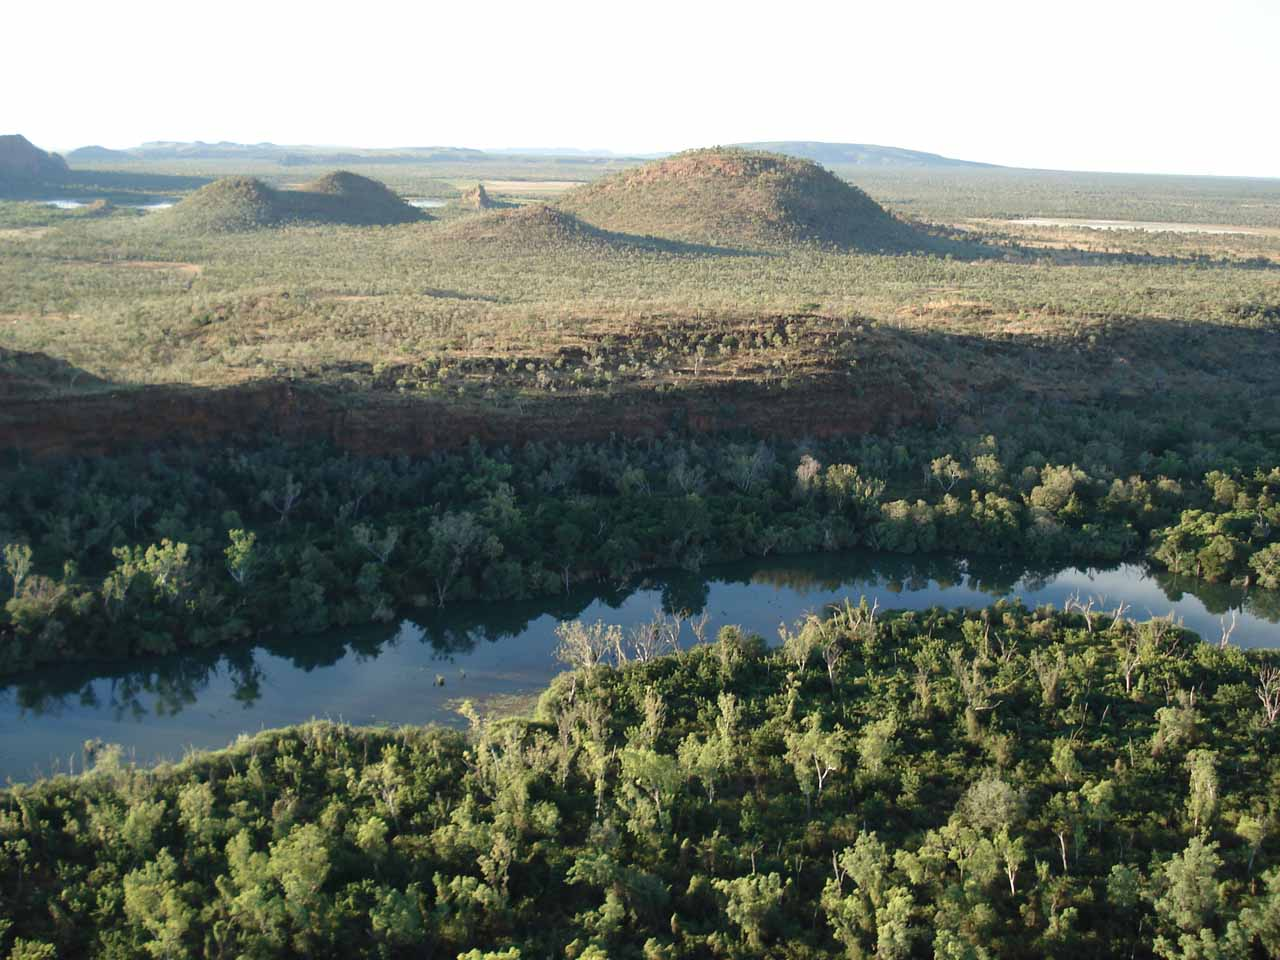 Looking across the Ord River